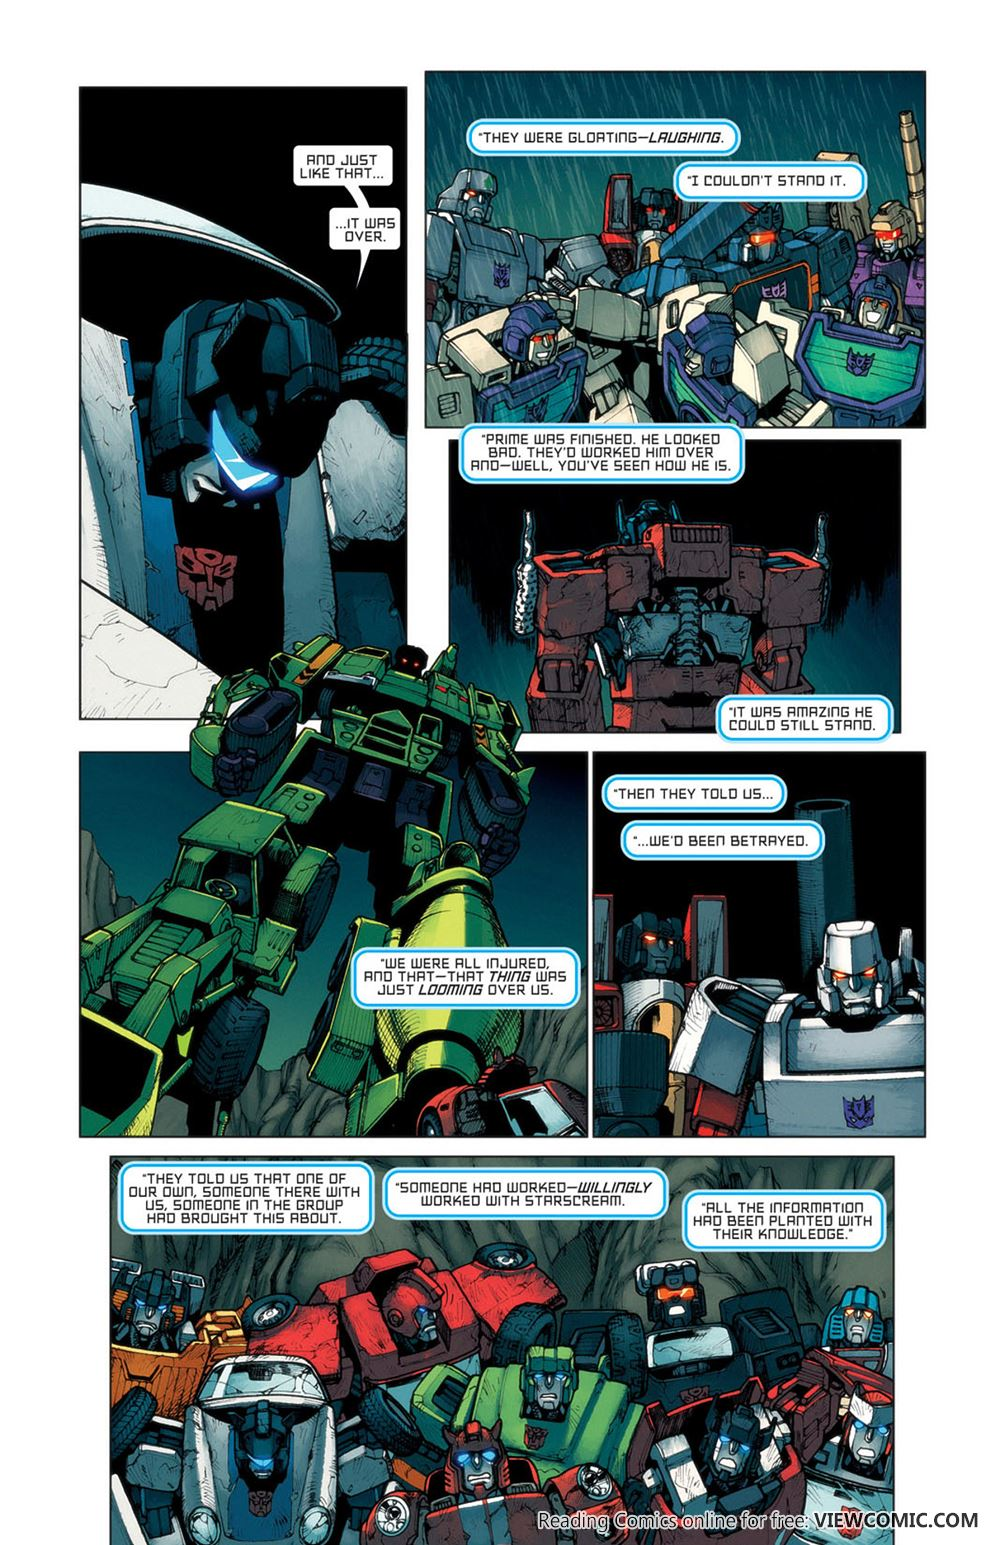 The Transformers – All Hail Megatron 007 (2008) | Viewcomic